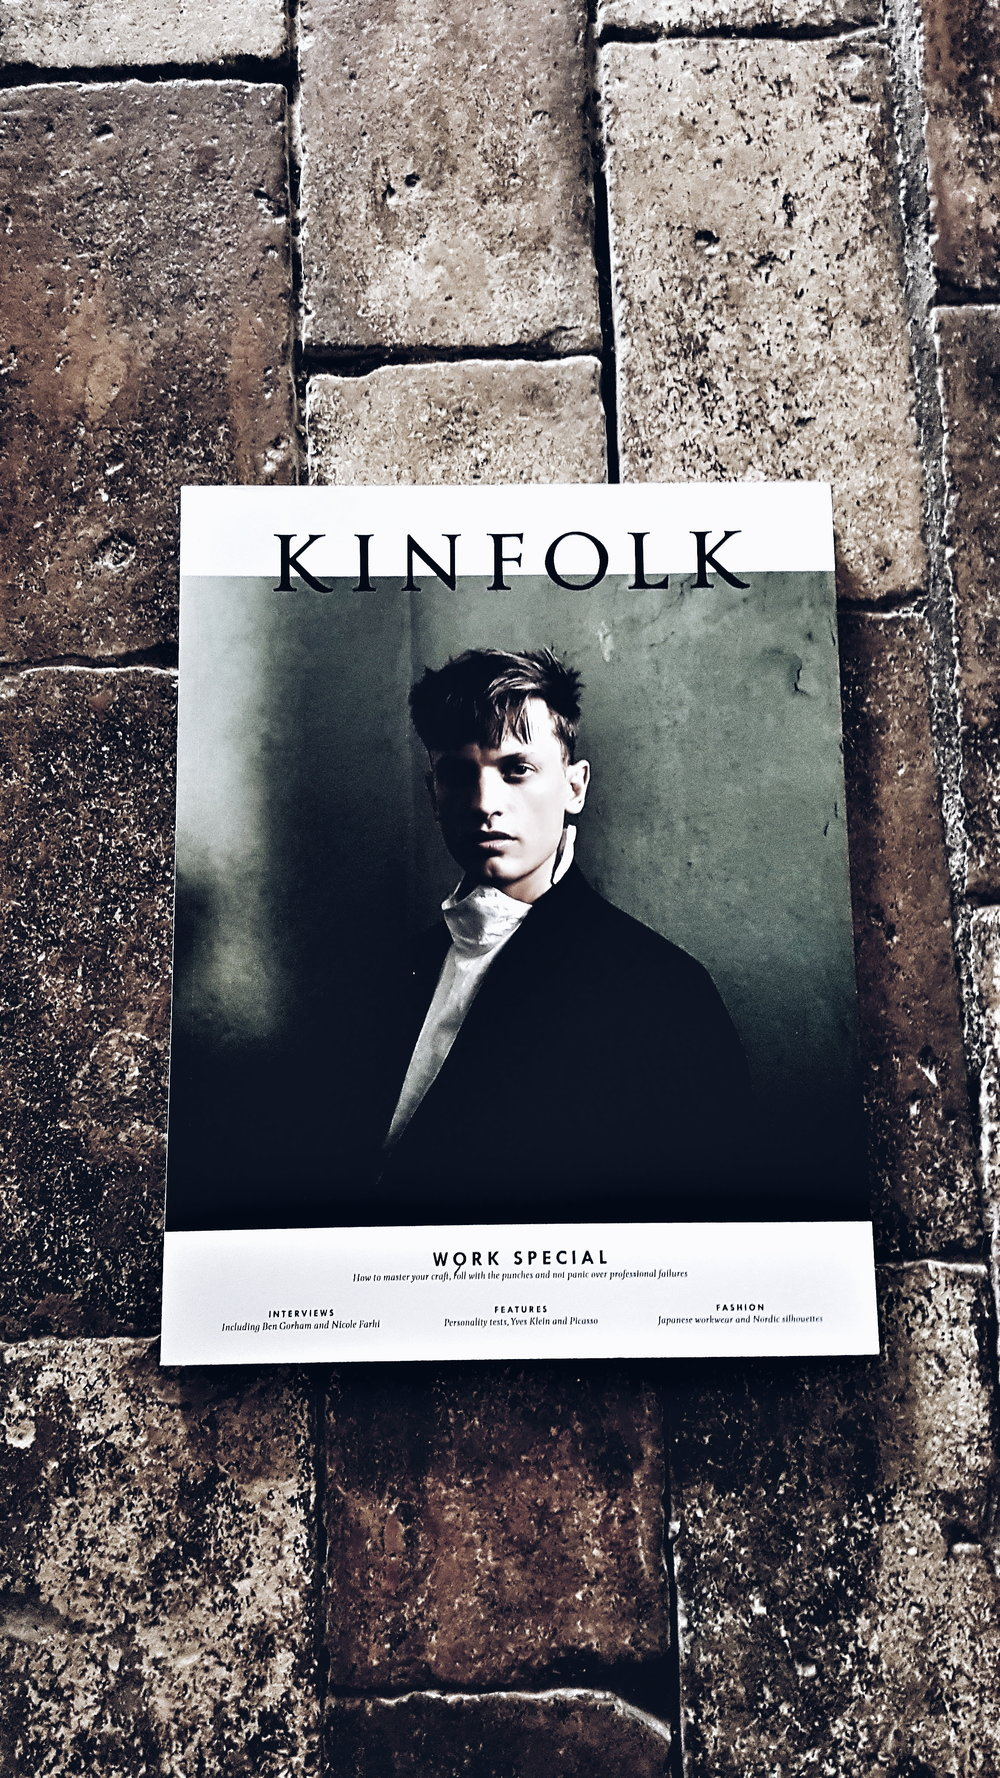 City dwellers relax, the cottage was fully stocked with the latest issues of Kinfolk and Cereal Magazine